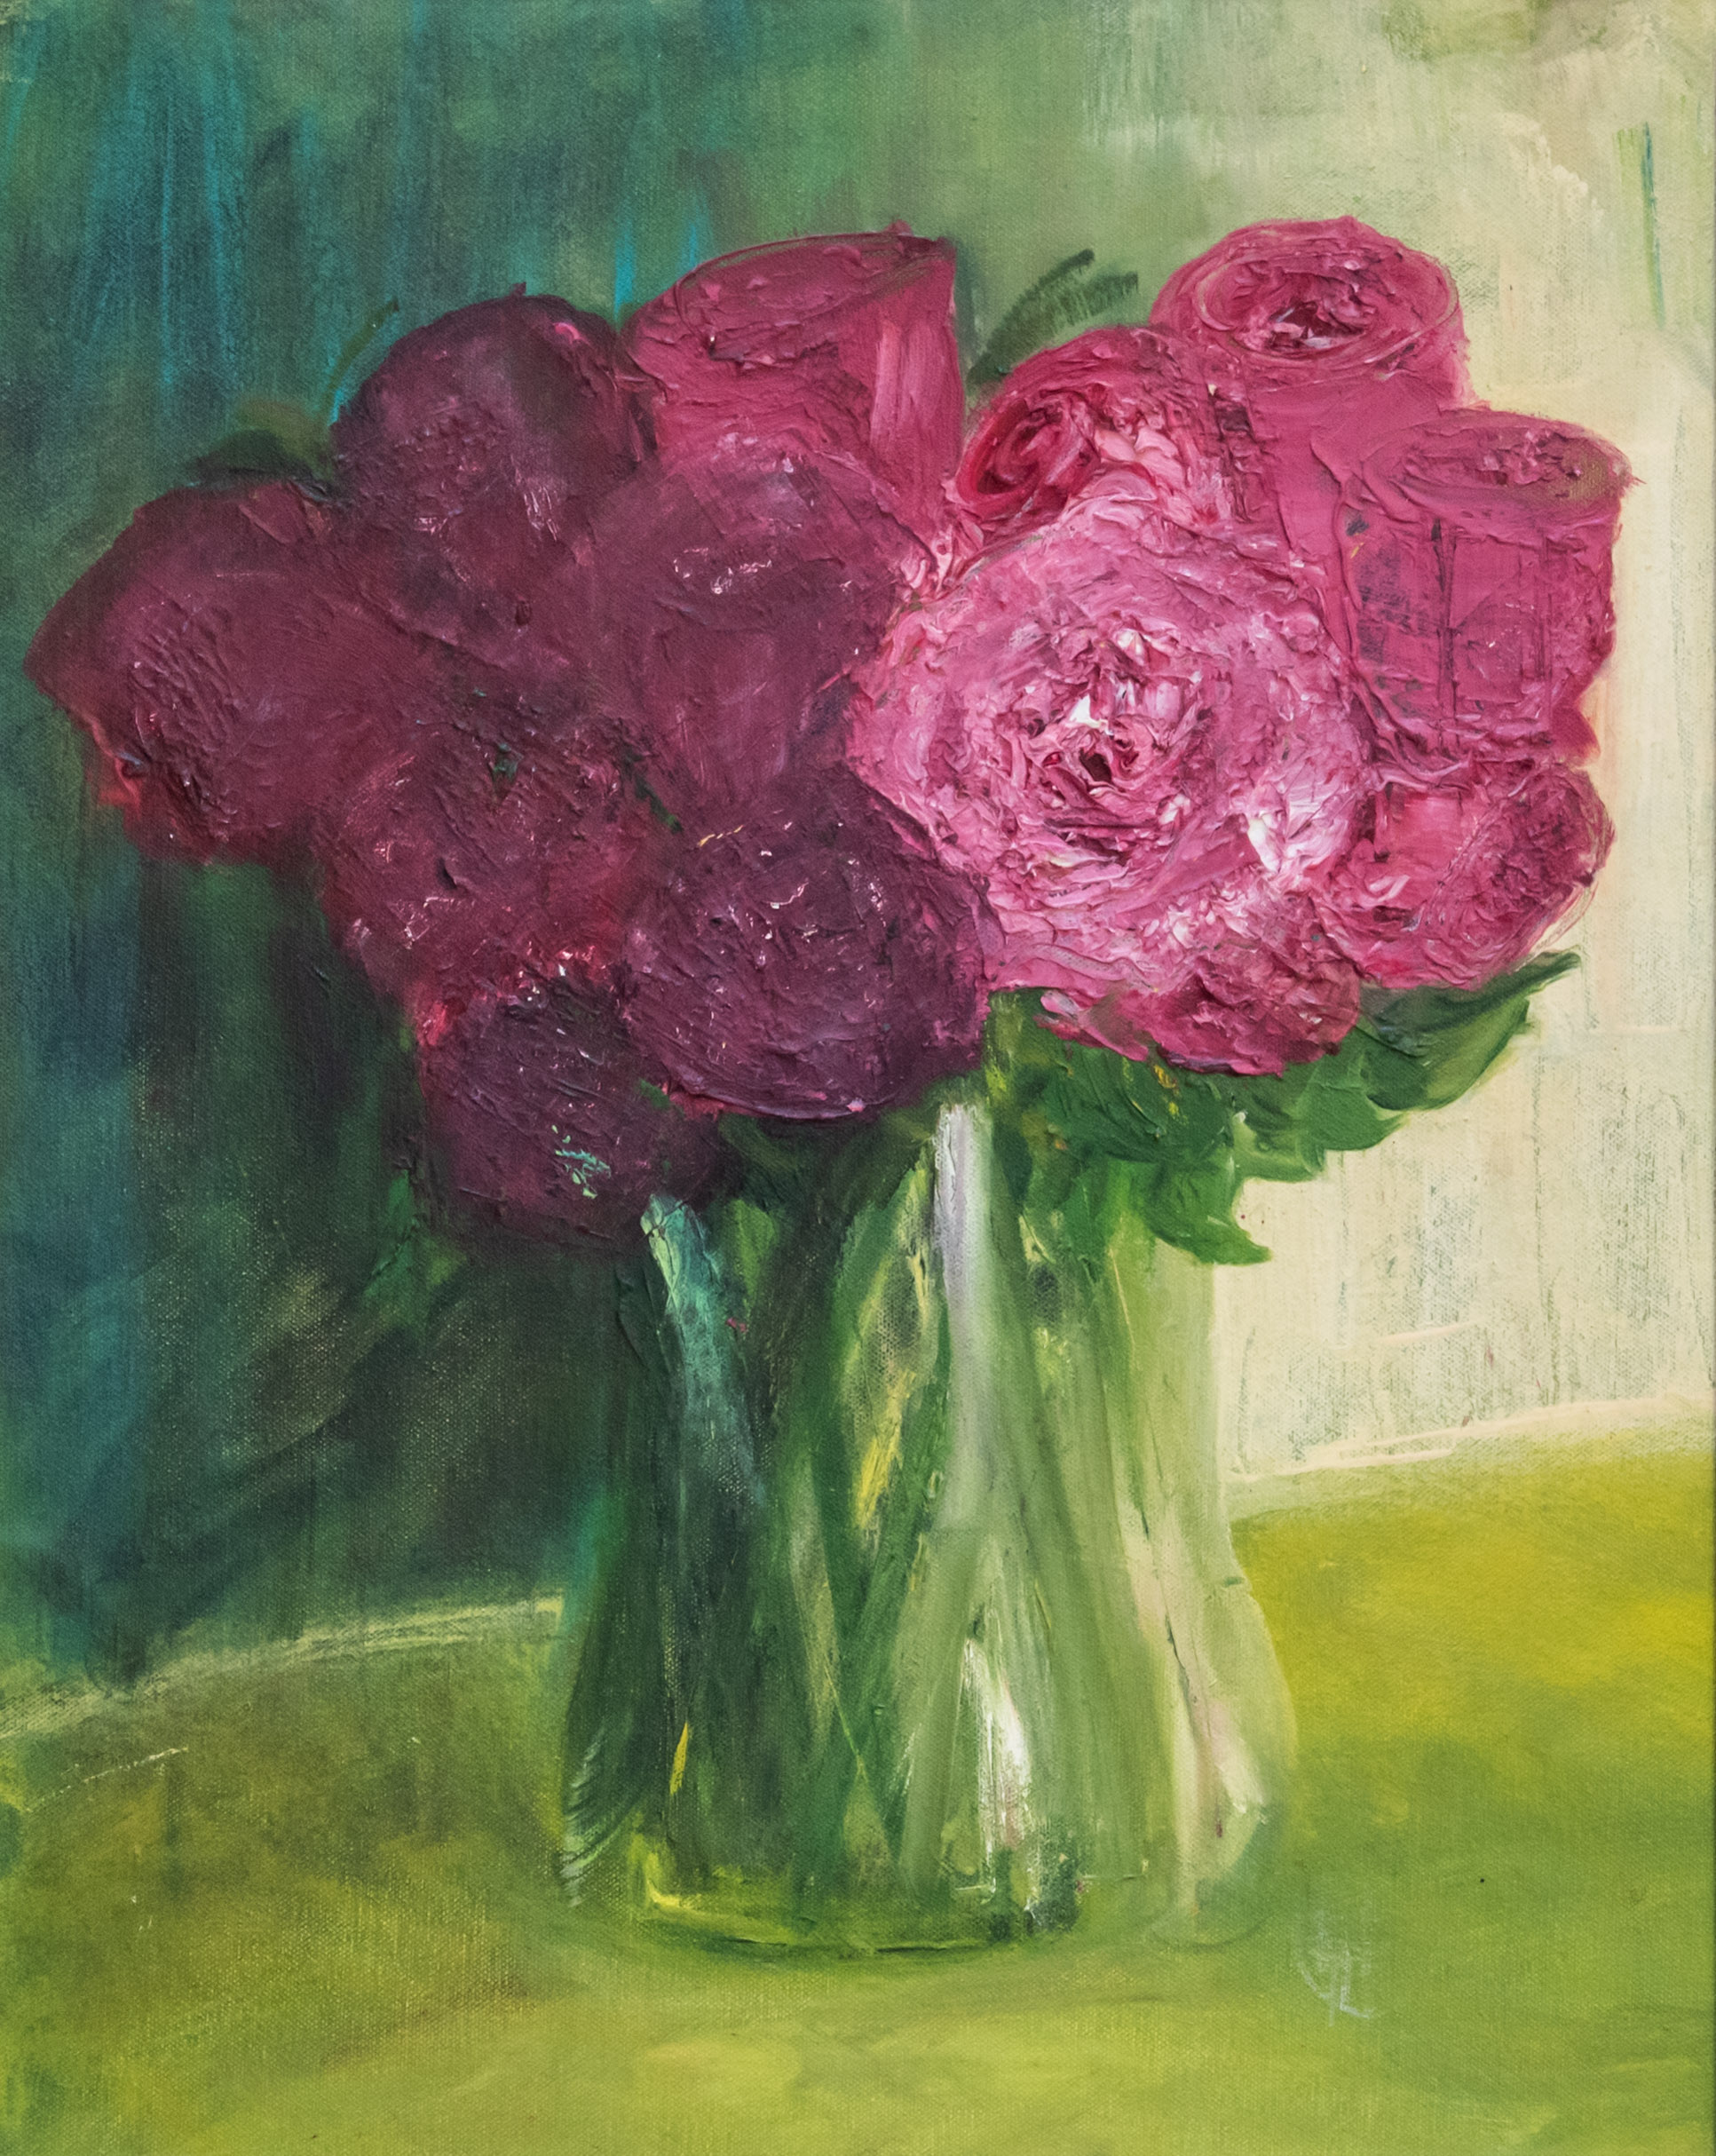 Pink Roses is an original oil painting by Henrietta Caledon. The deep pinks contrasted with multiple green tones are made particularly vibrant by the bold frame.